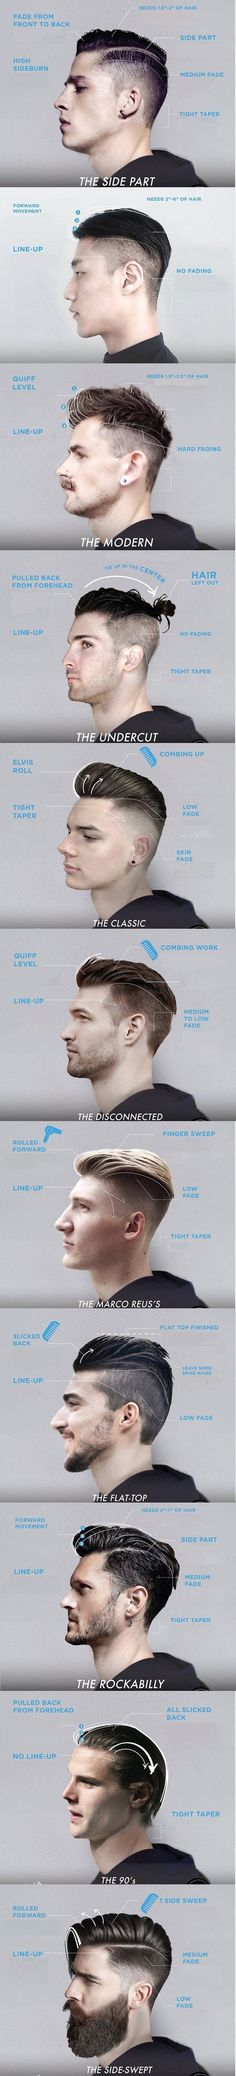 Trendy Hair Styling for Men With Undercut 2016